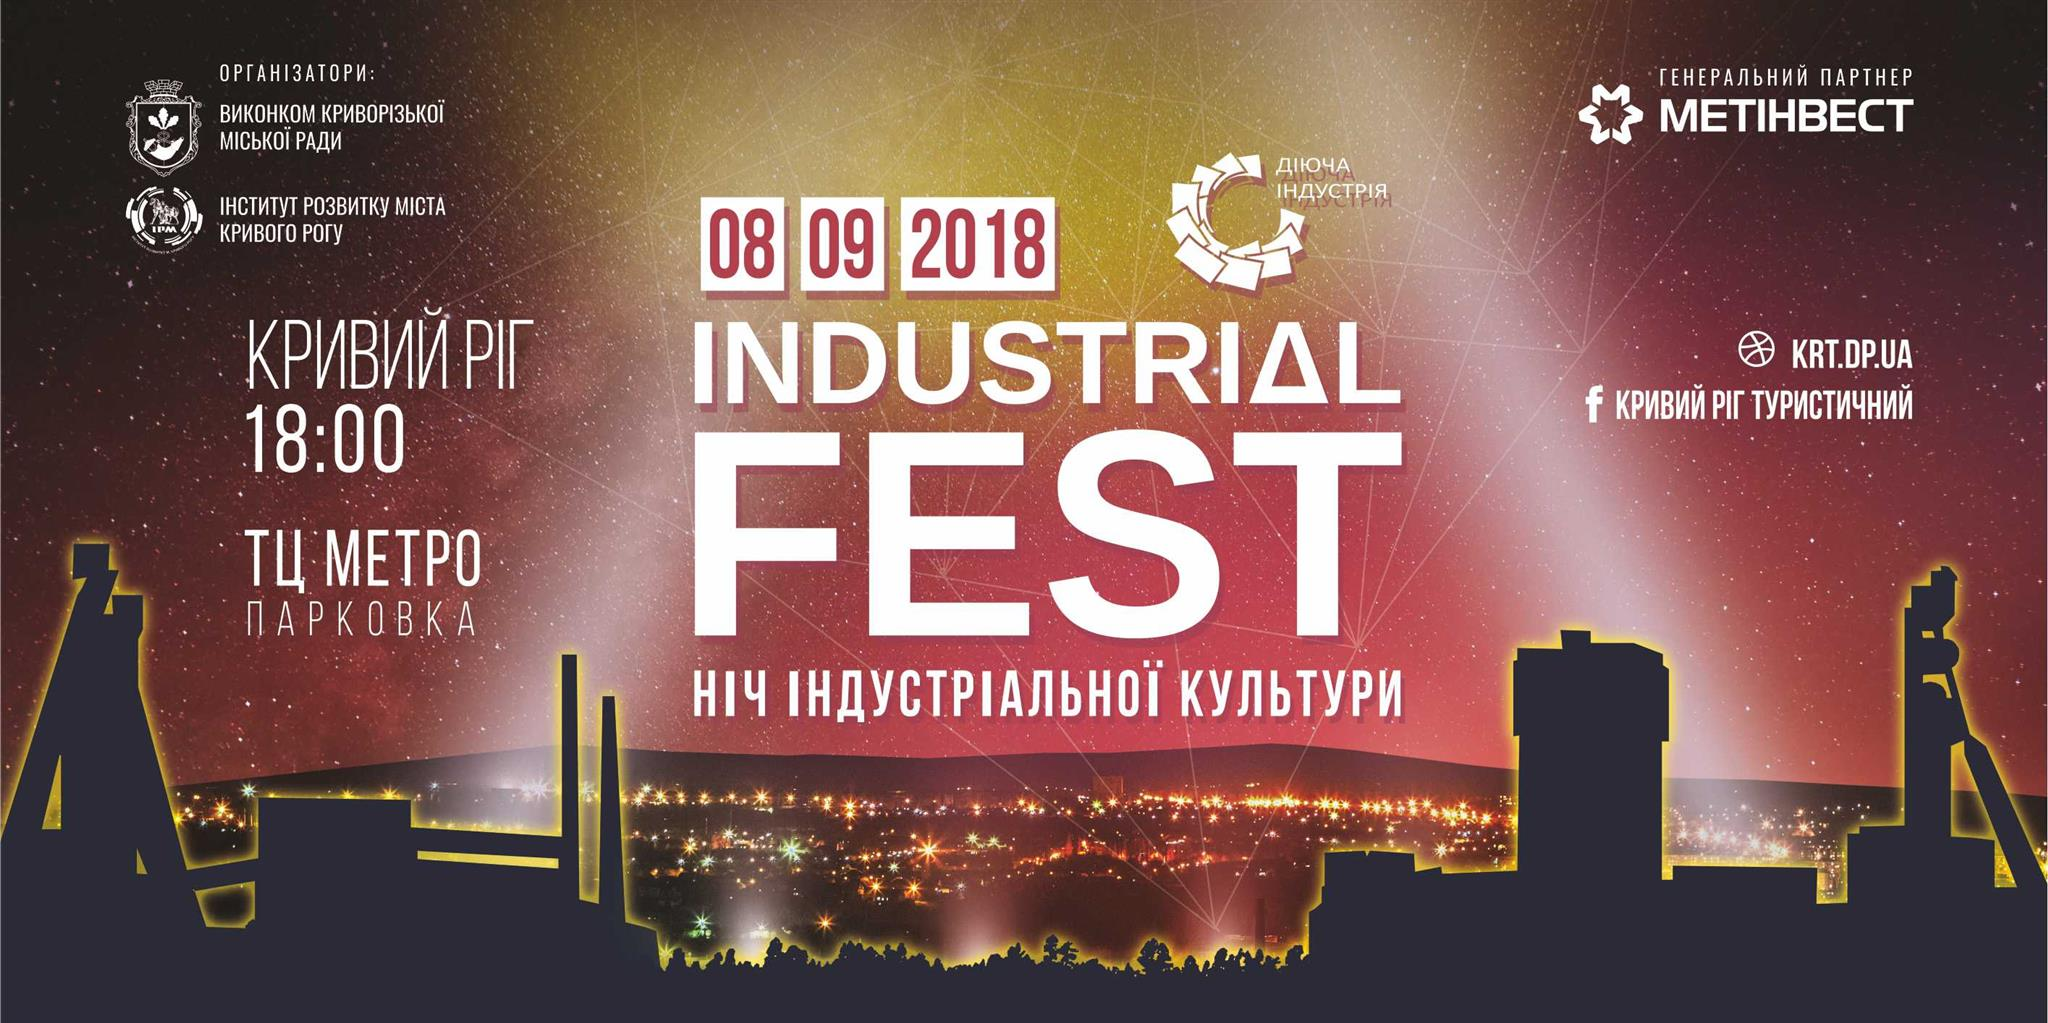 Industrial fest1